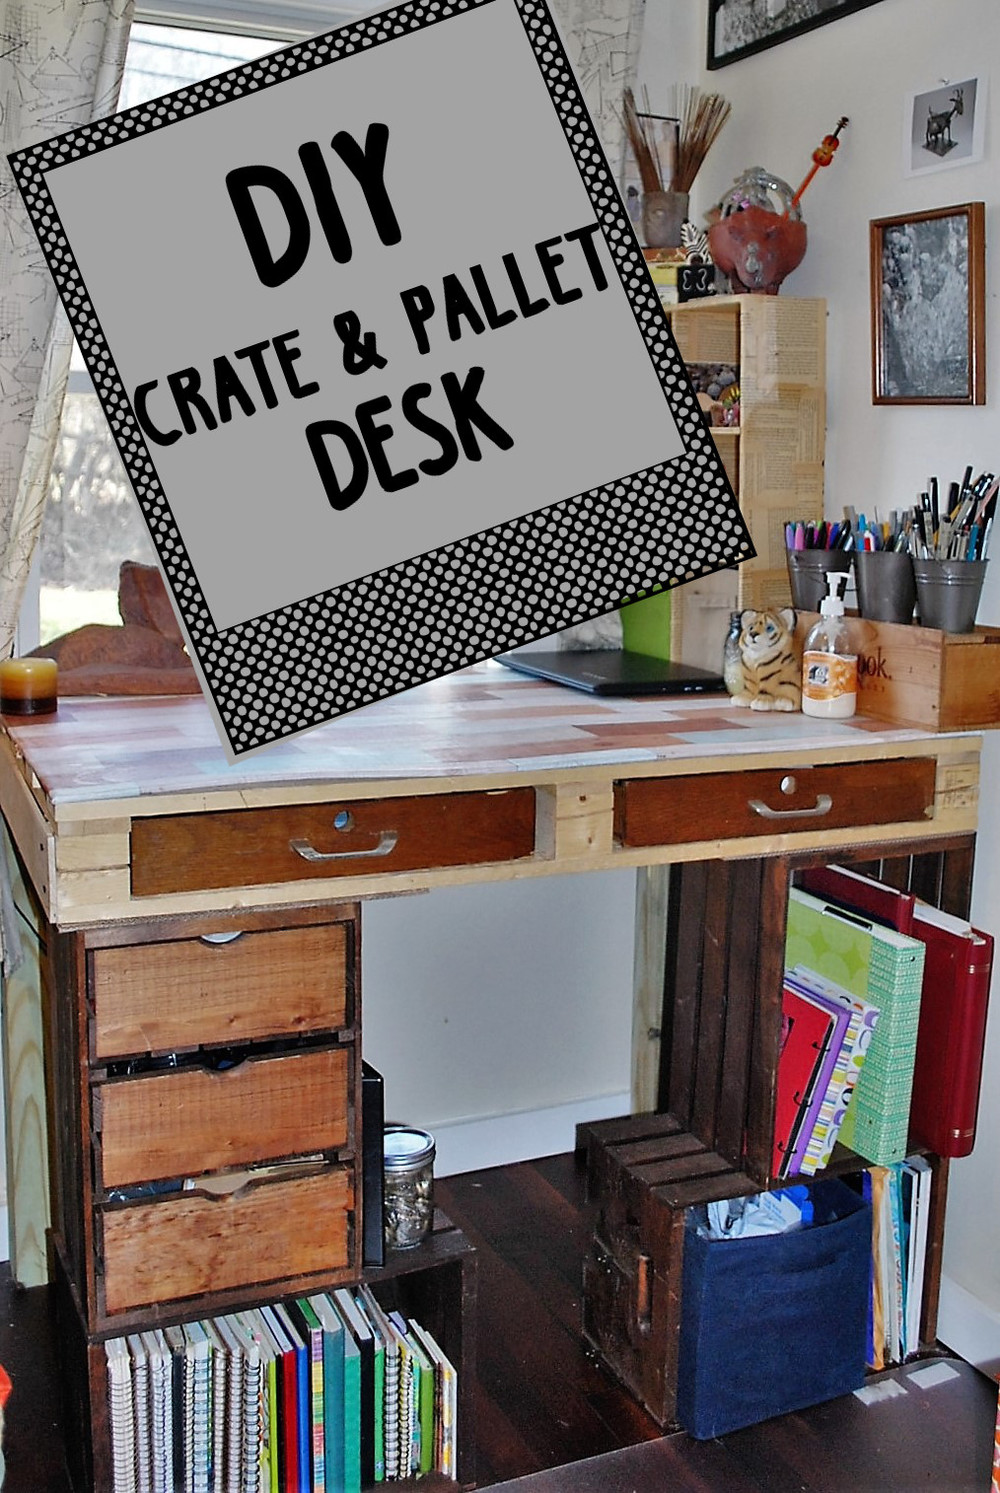 diy crate pallet desk.jpg